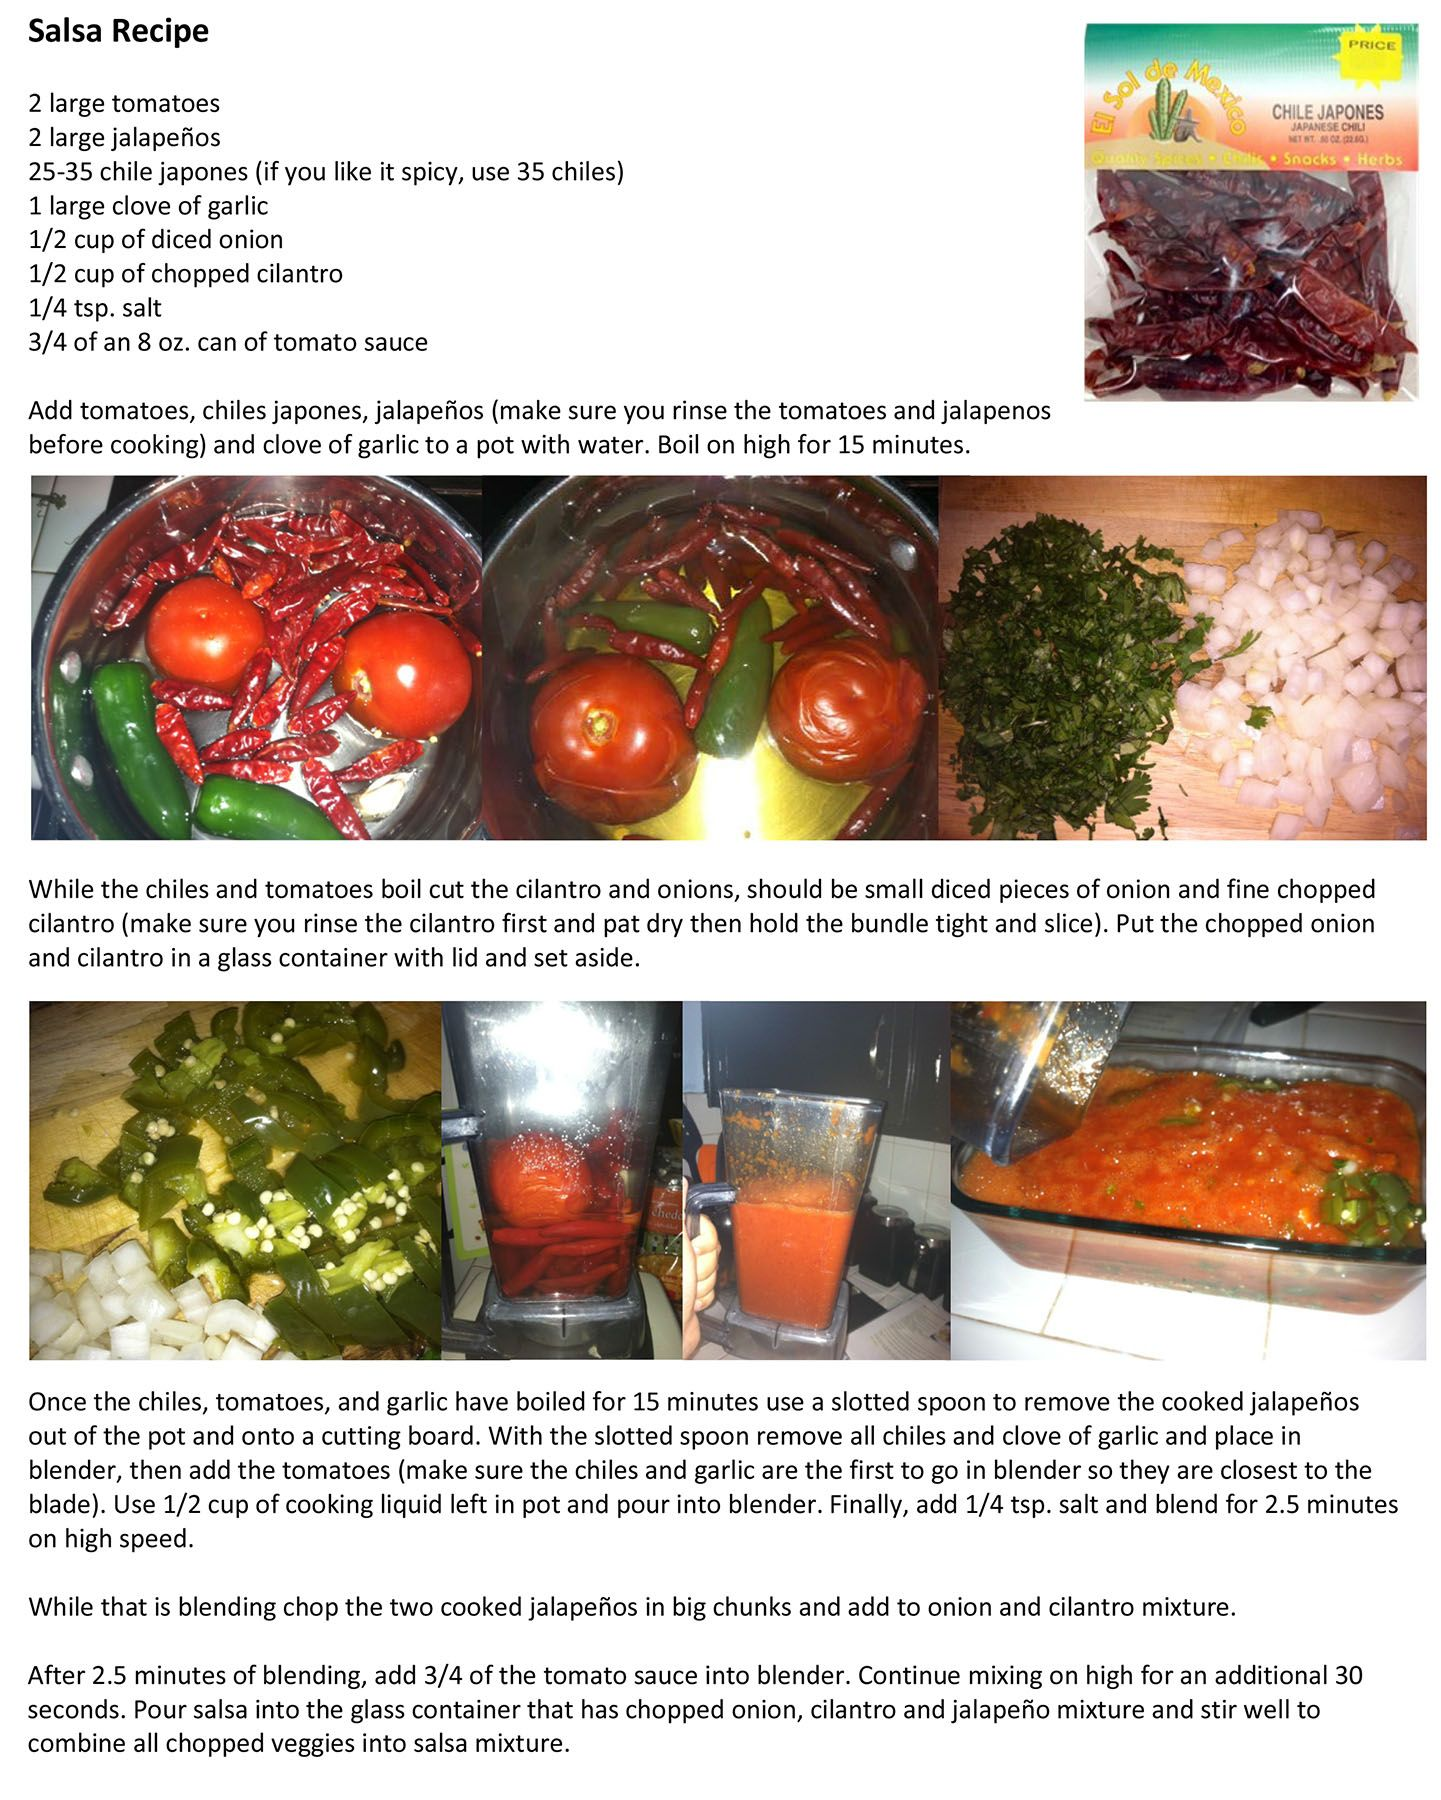 My Recipe For Salsa Hecha Con Chile Japones My Husband S Favorite Hot Sauce Recipes Southwestern Recipes Mexican Food Recipes